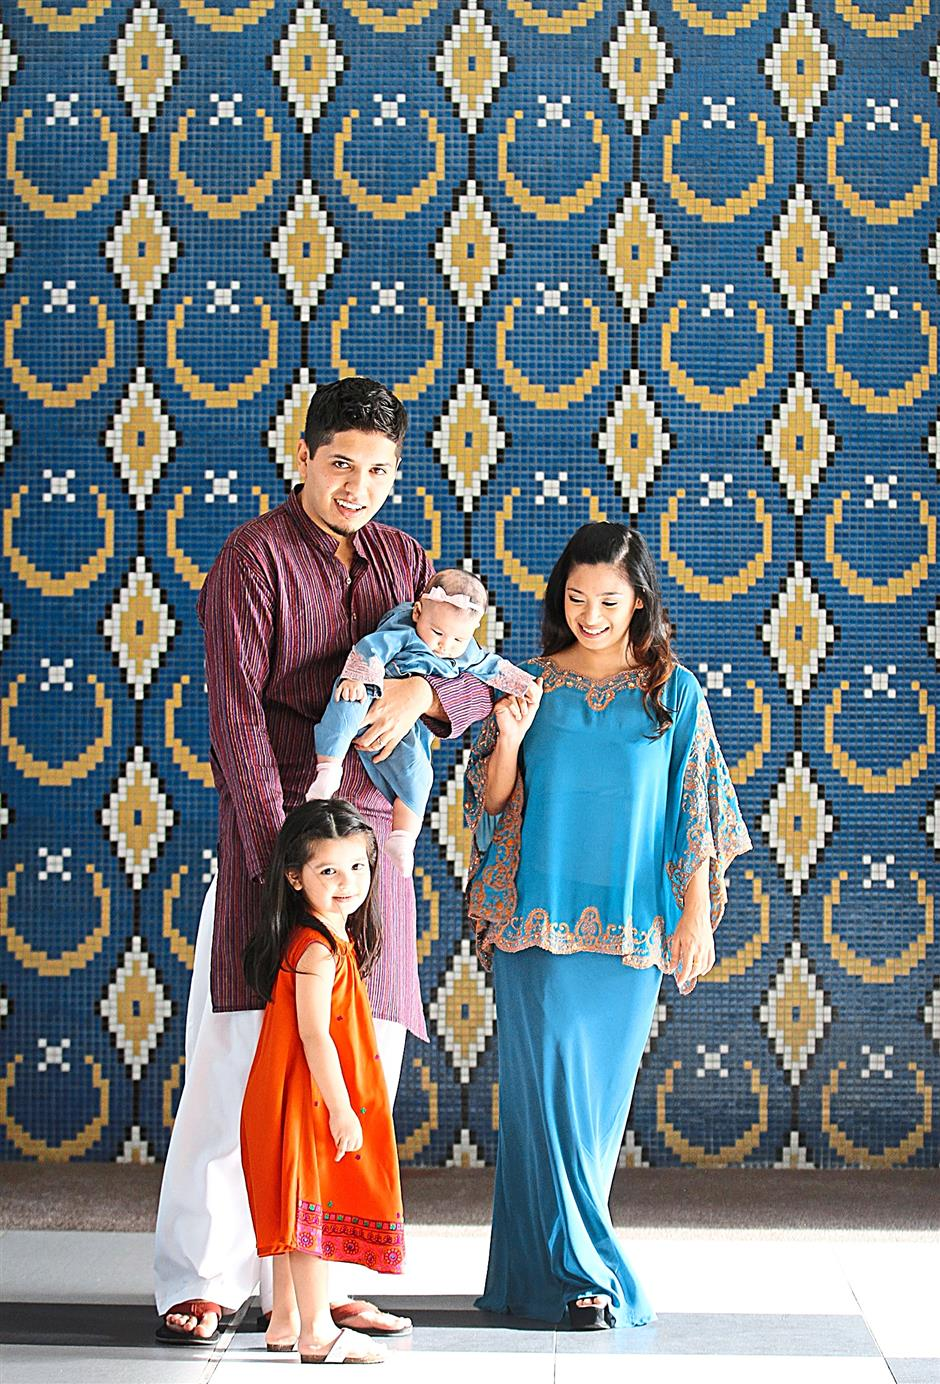 All about family: Some day, Omer Sohail would like to observe Ramadan in Pakistan with his Malaysian wife Nurul Huda and their two daughters.